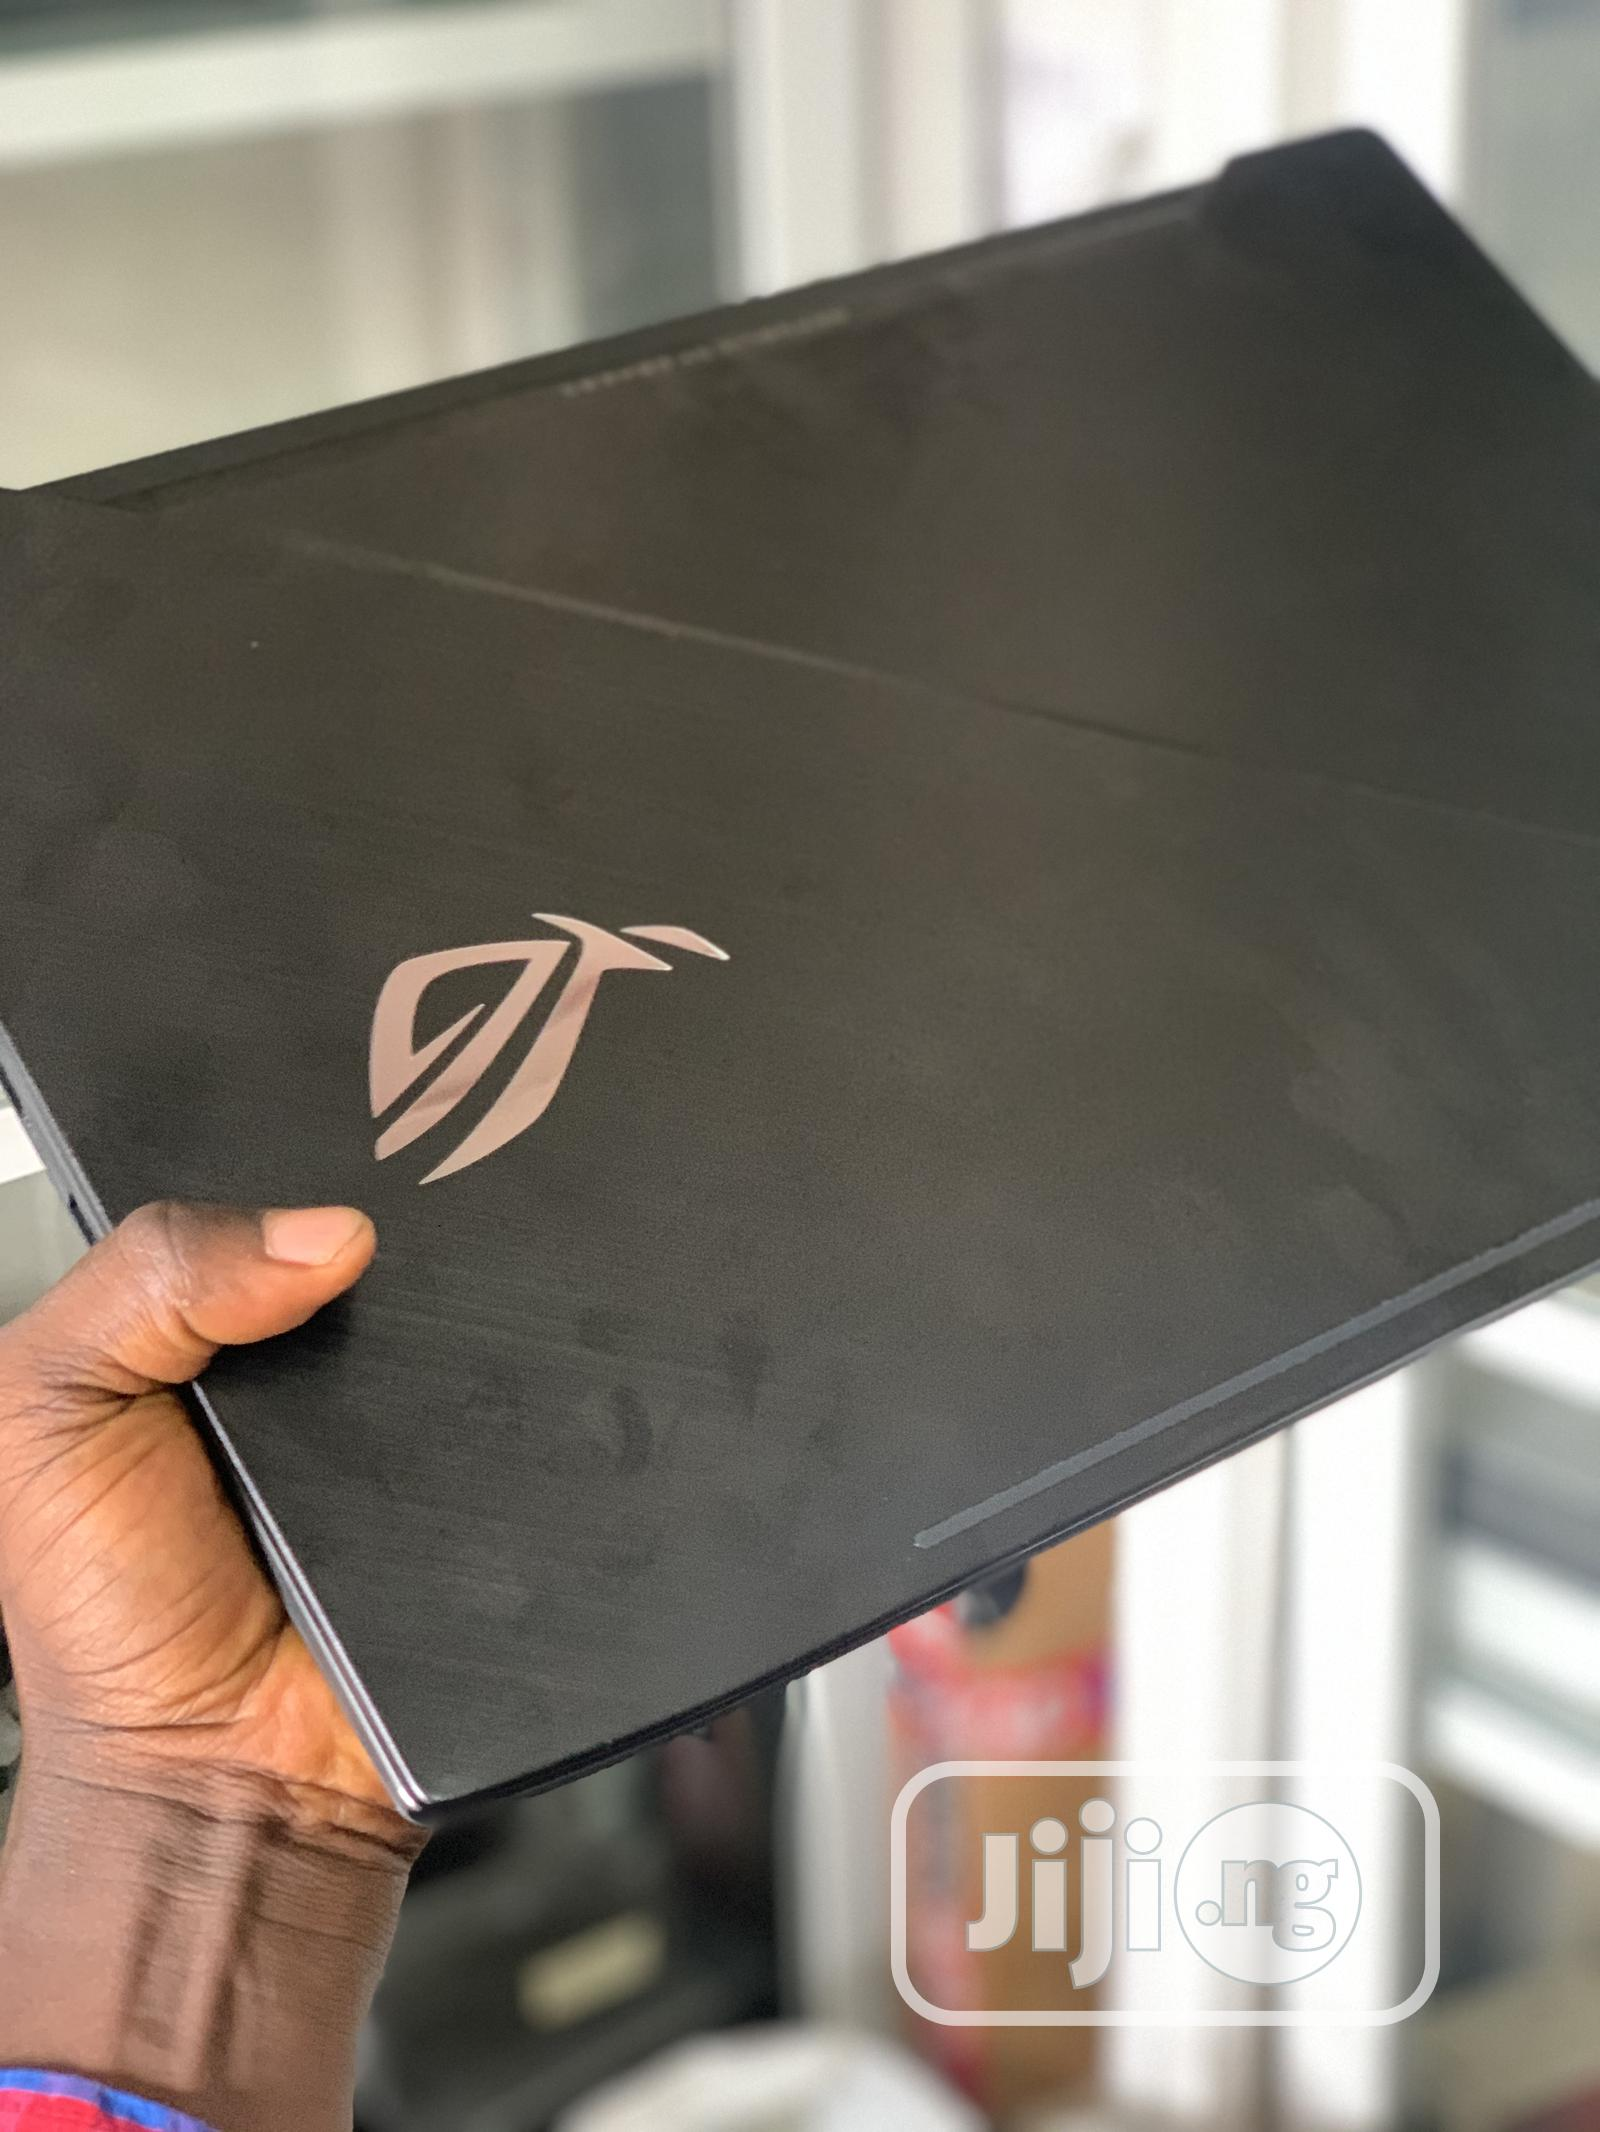 Laptop Asus ROG Strix GL503 16GB Intel Core i7 SSD 256GB | Laptops & Computers for sale in Ikeja, Lagos State, Nigeria